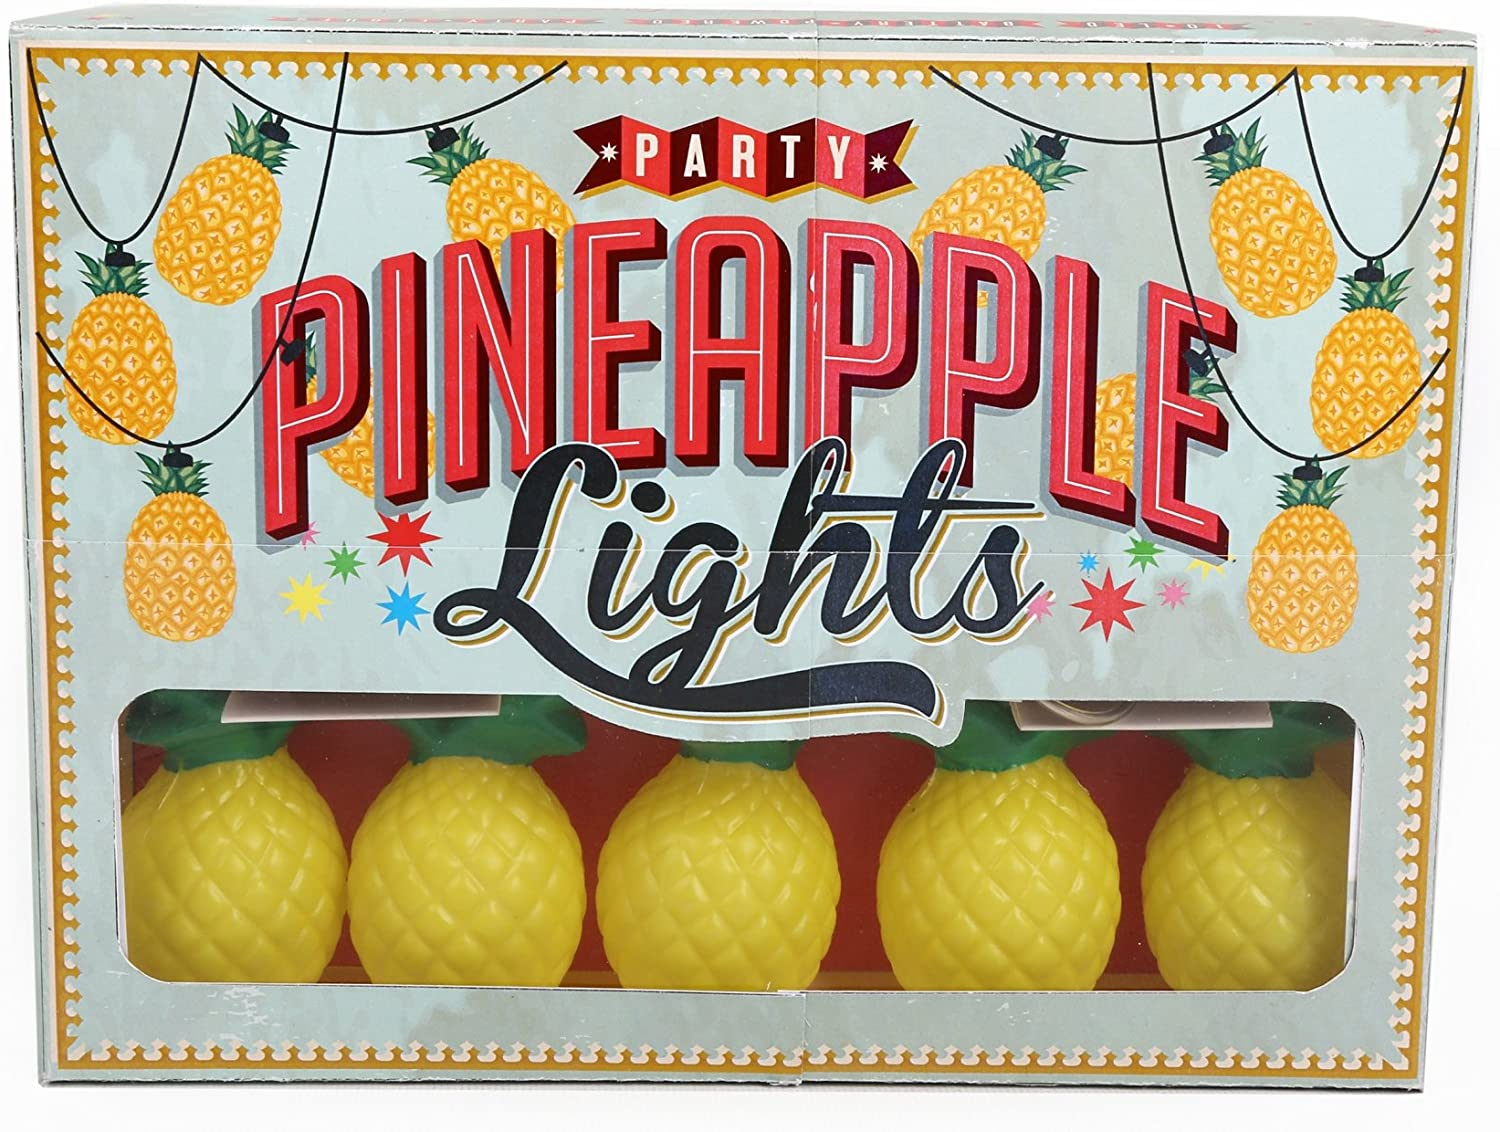 10 LED Pineapple Light Up Garland String 1.5M Fairy Lights Party Home Decor 1.5M